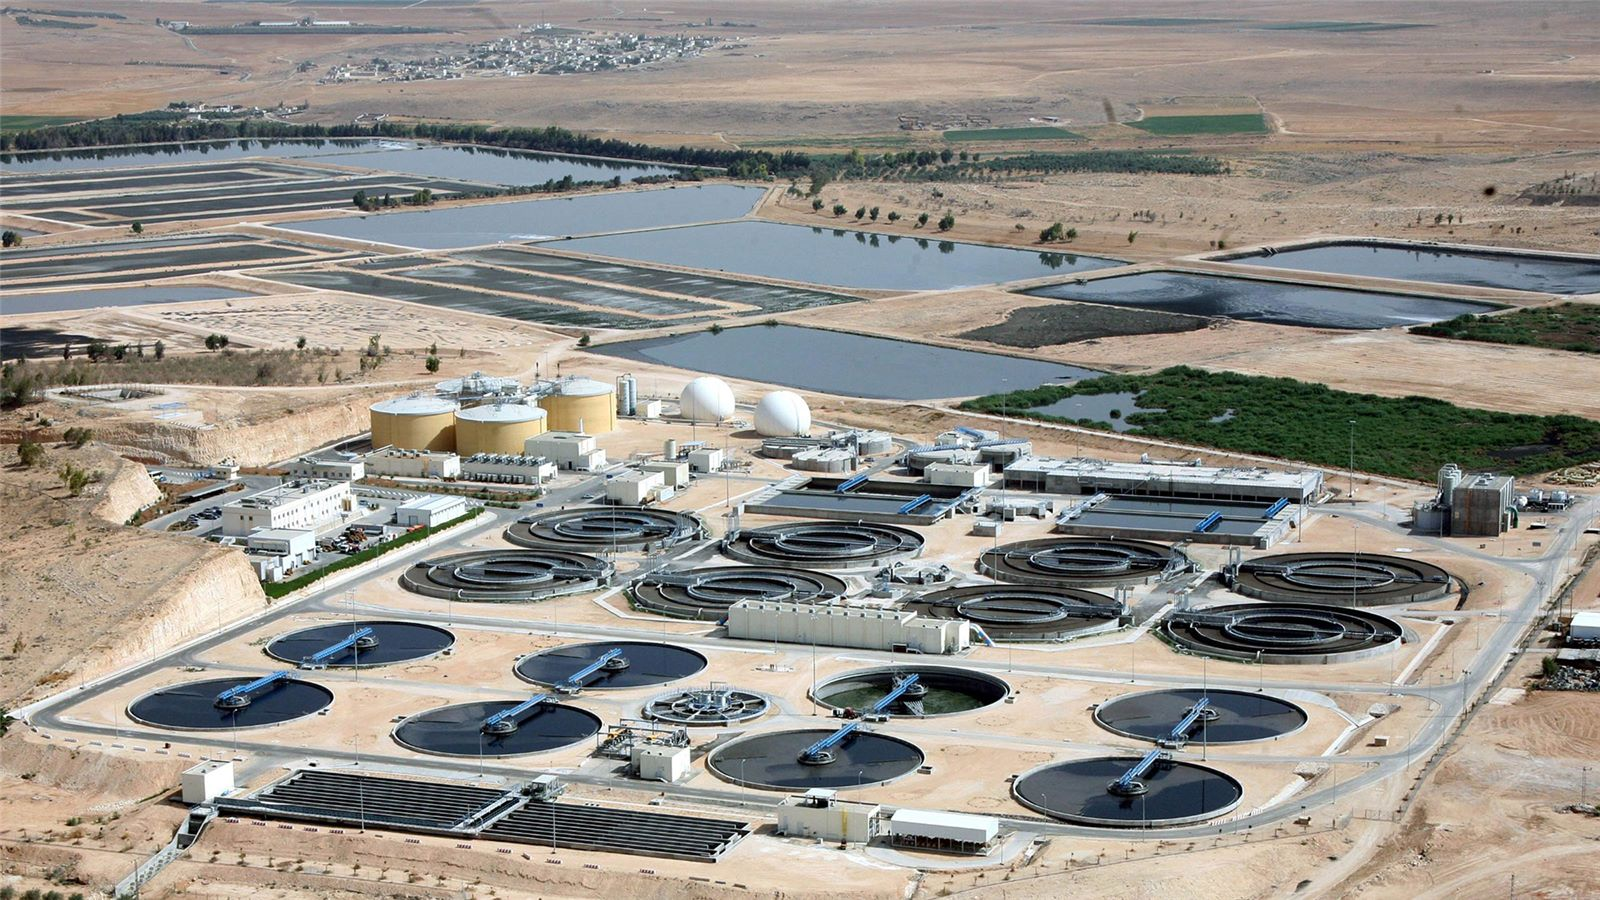 As Samra wastewater and biosolids treatment and reuse